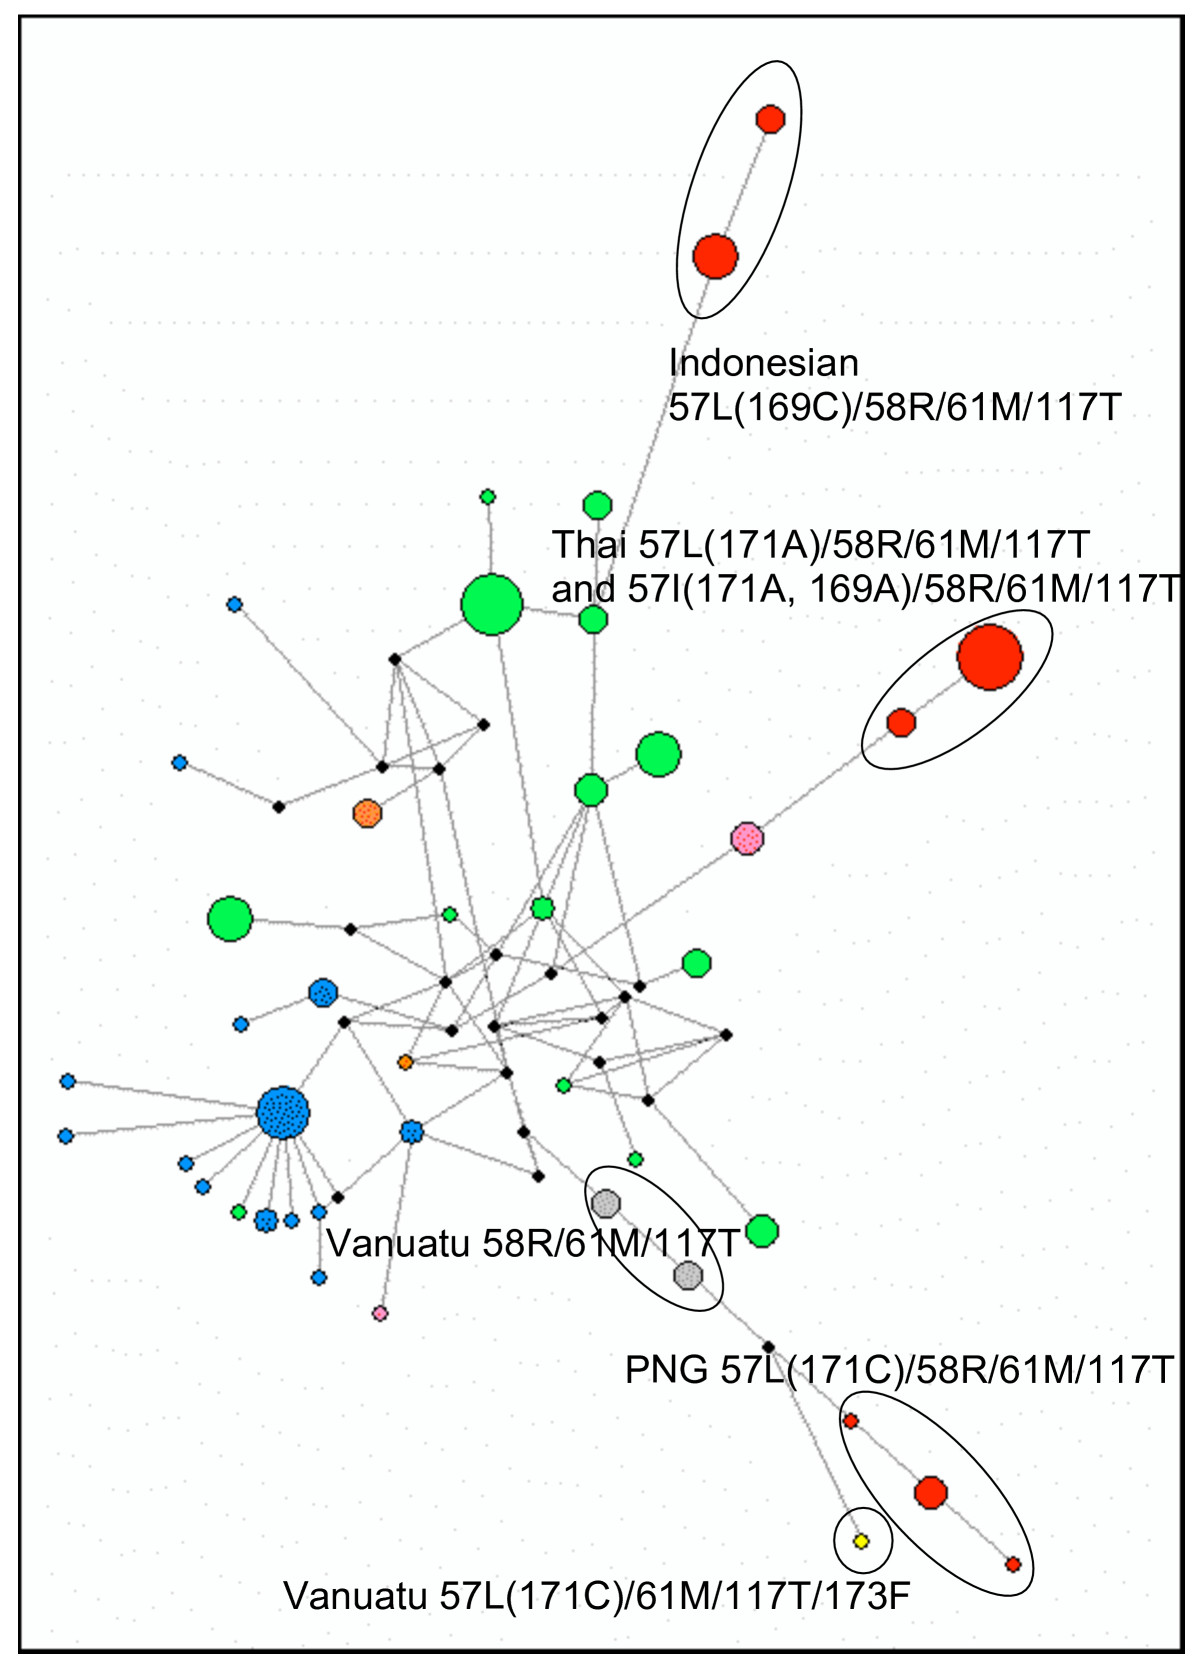 http://static-content.springer.com/image/art%3A10.1186%2F1475-2875-7-72/MediaObjects/12936_2008_Article_547_Fig2_HTML.jpg